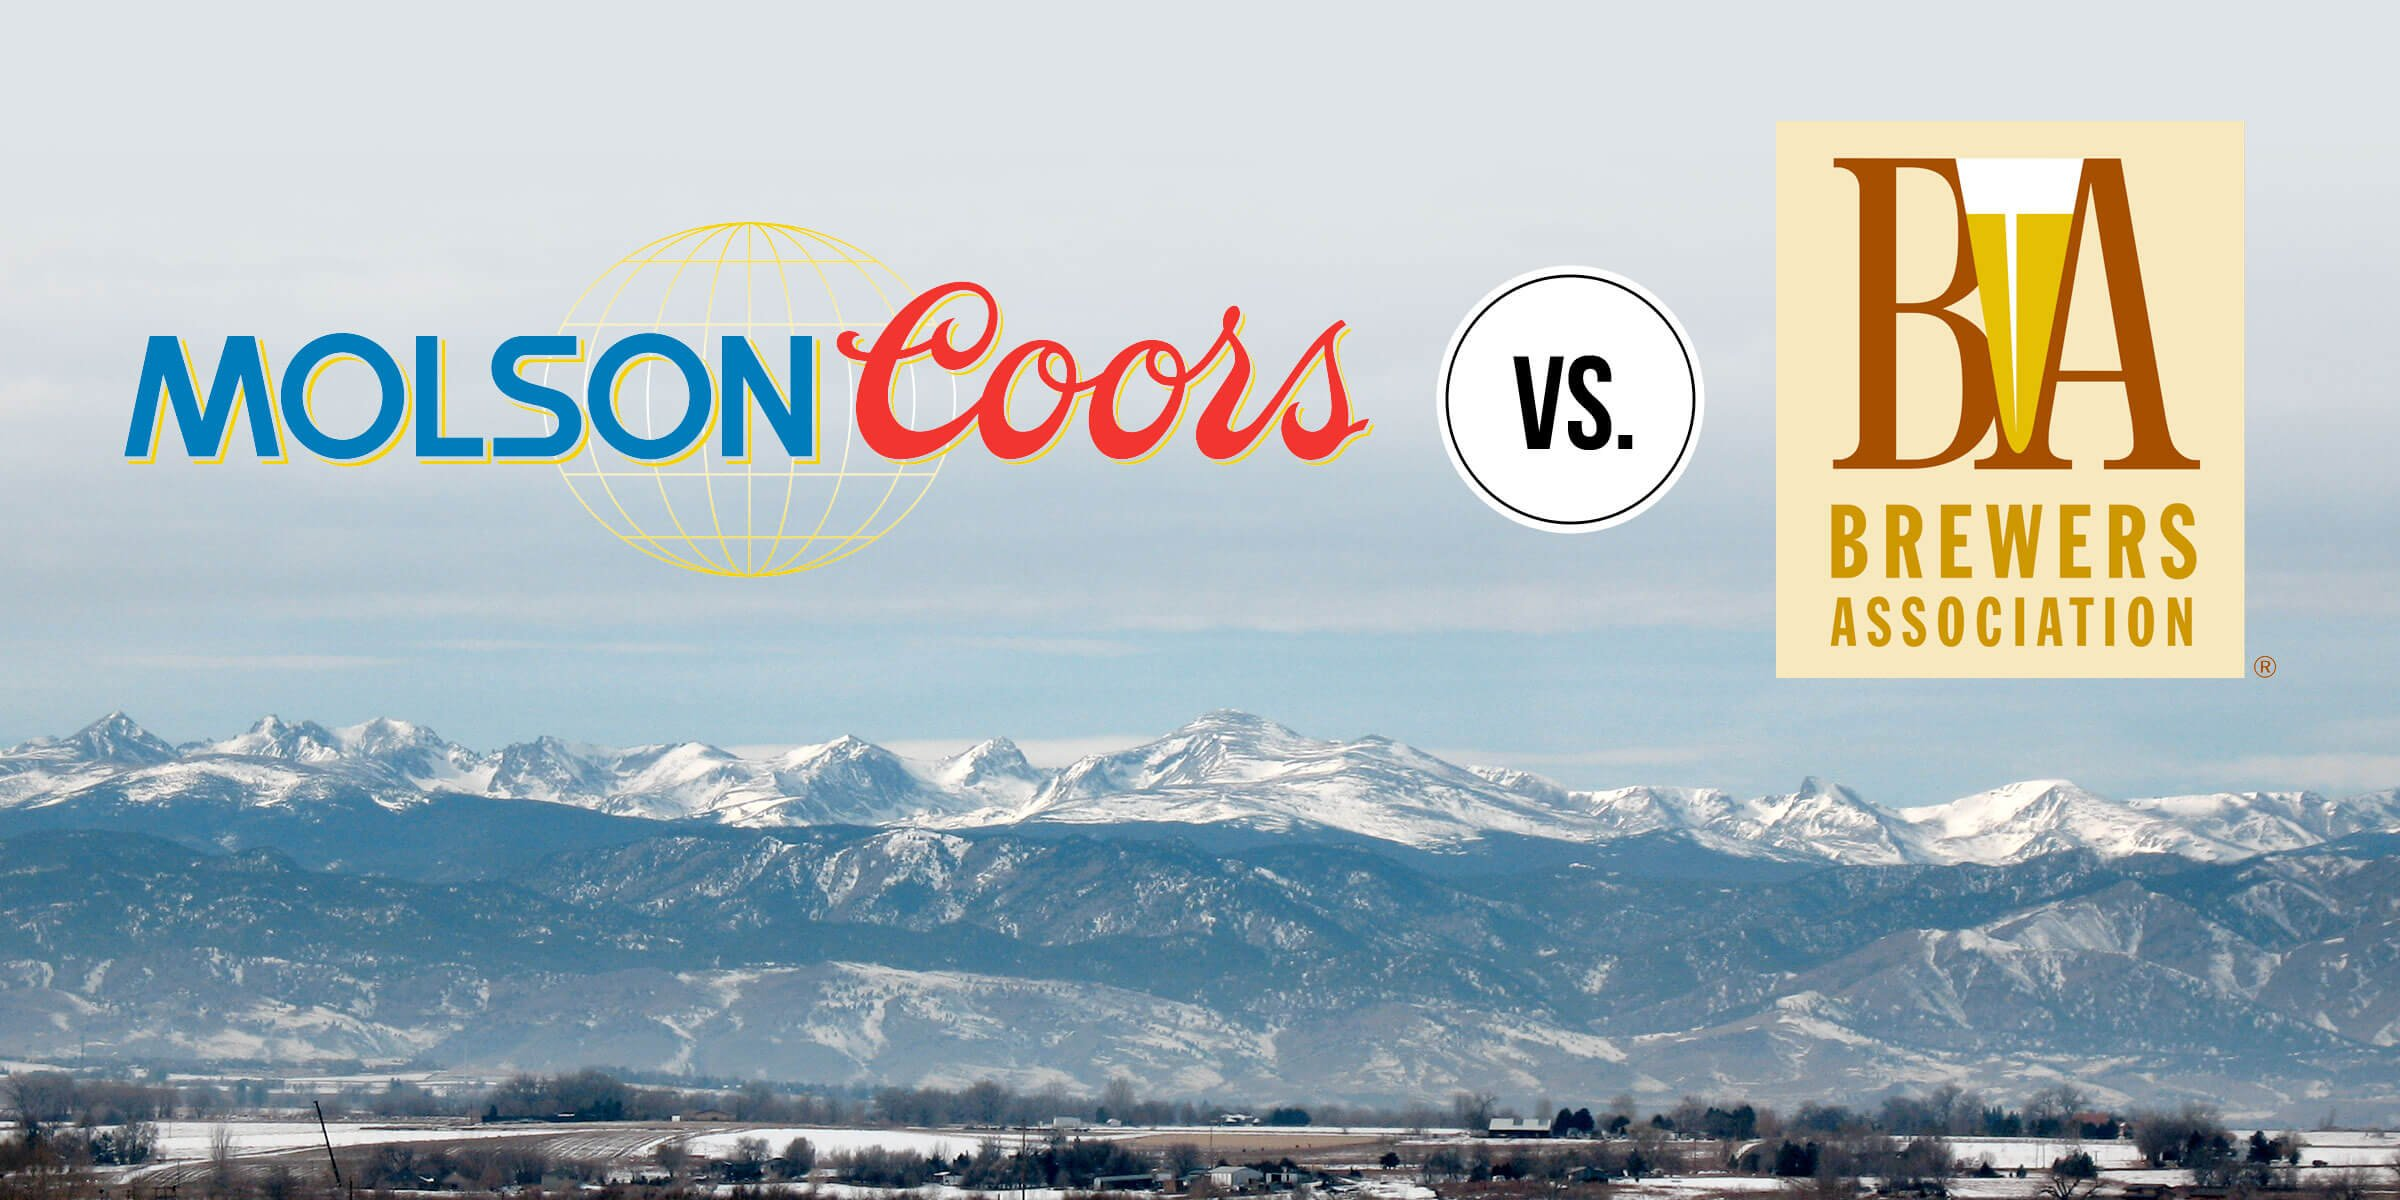 Molson Coors chairman Pete Coors takes exception to comments made by members of the Brewers Association